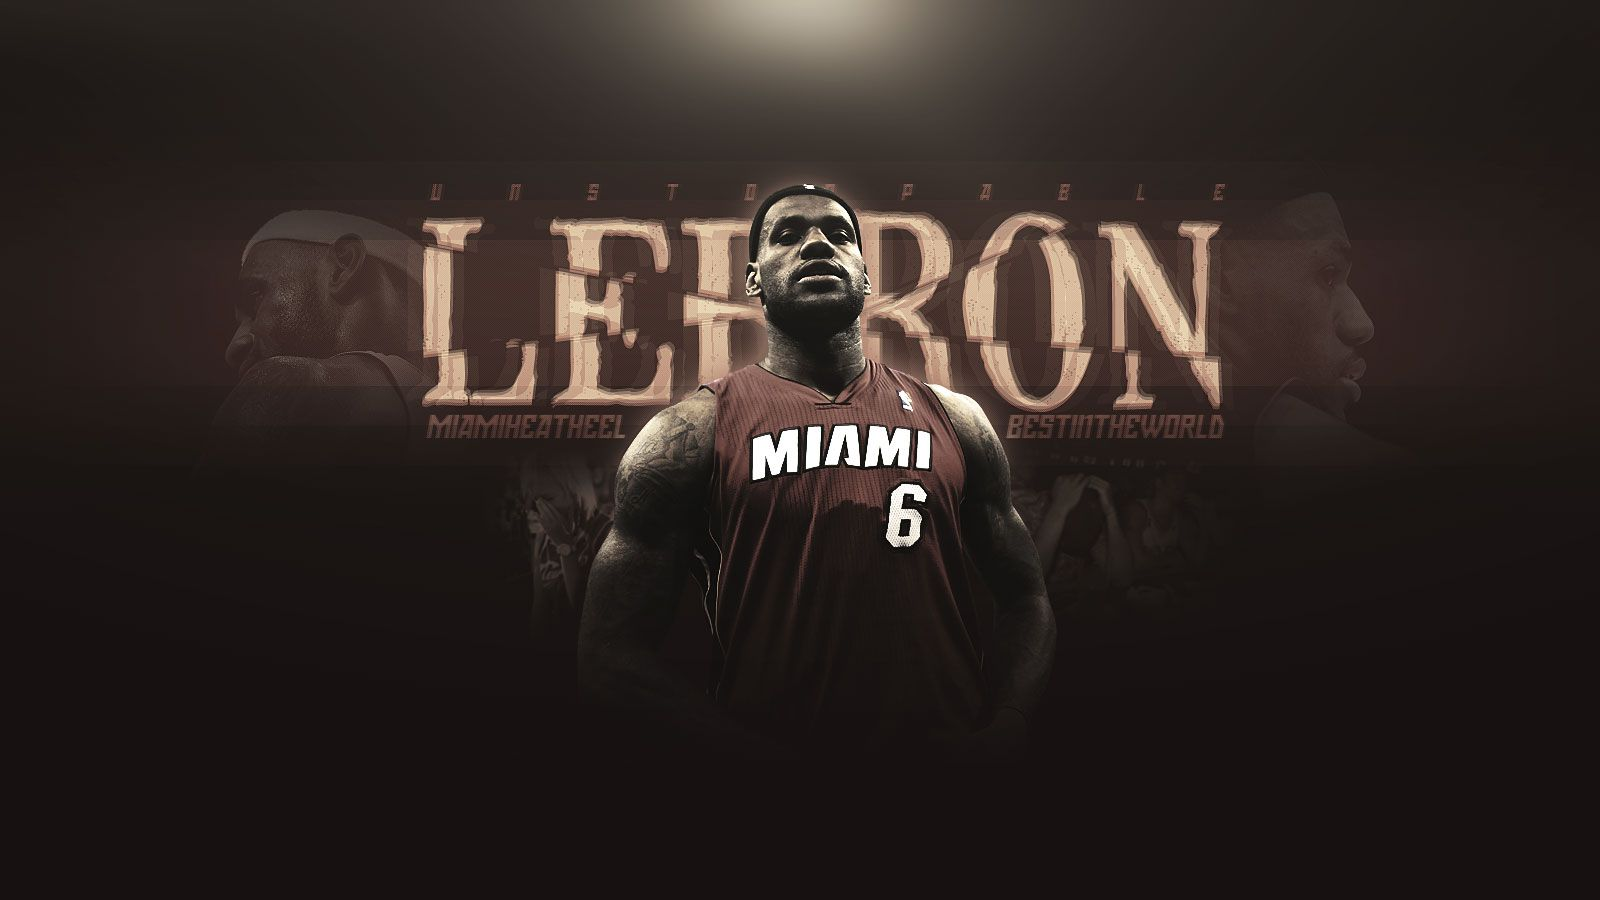 Lebron James Hd Wallpapers Images 6 Hd Wallpapers Lebron James Miami Heat Lebron James Heat Lebron James